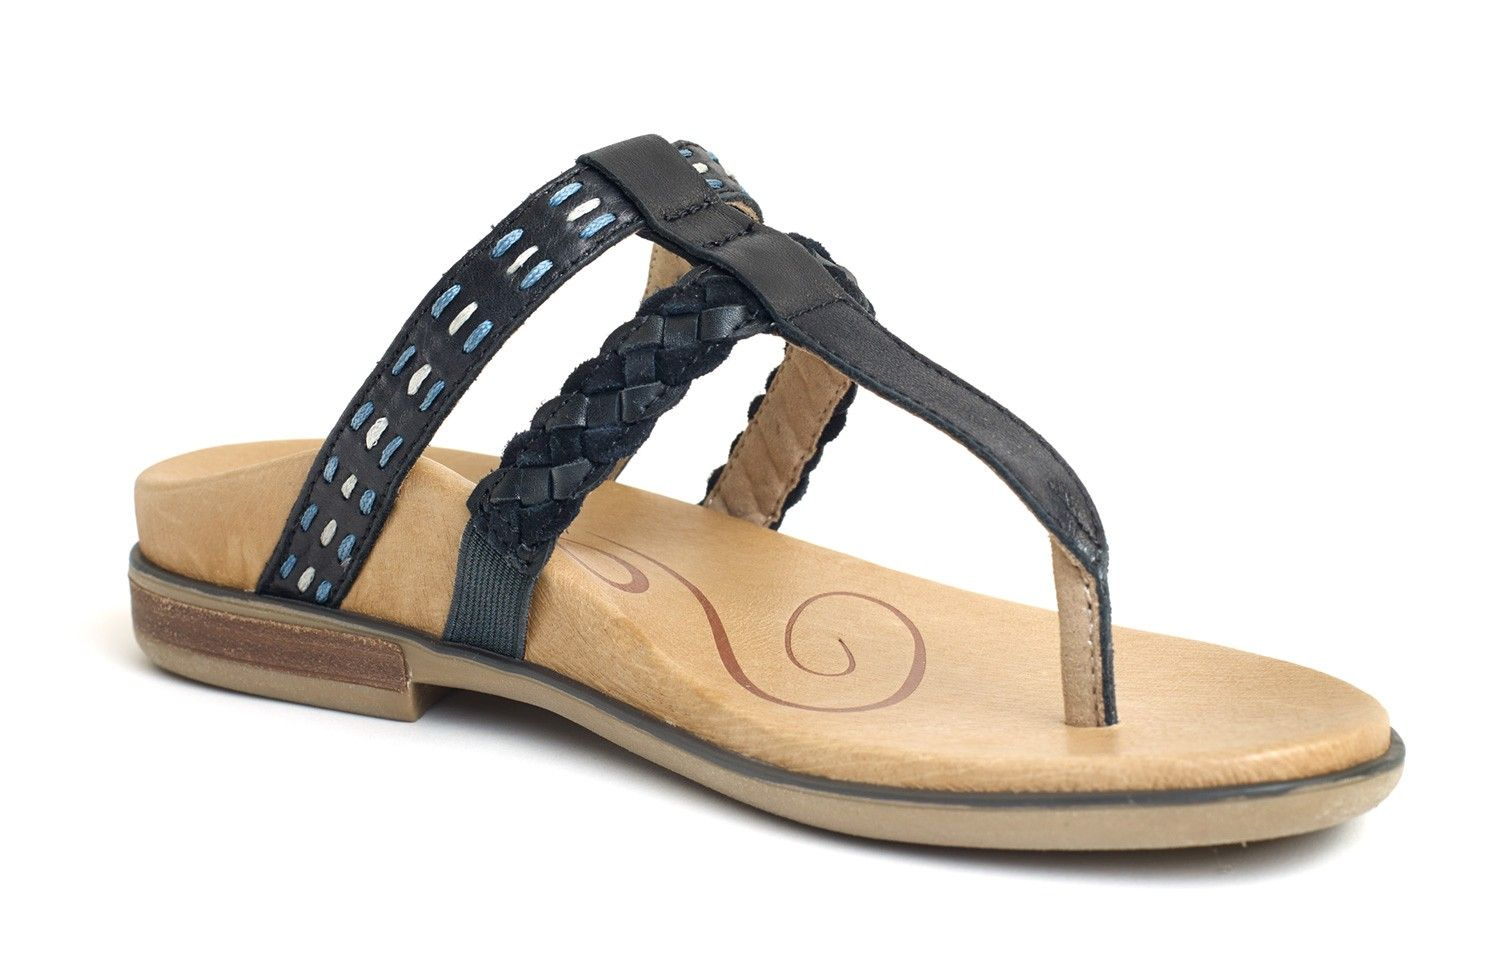 7ac948ba6d3 Mona Braided Thong Sandal - Black - Women - Aetrex Worldwide Orthotic  Comfort Shoes